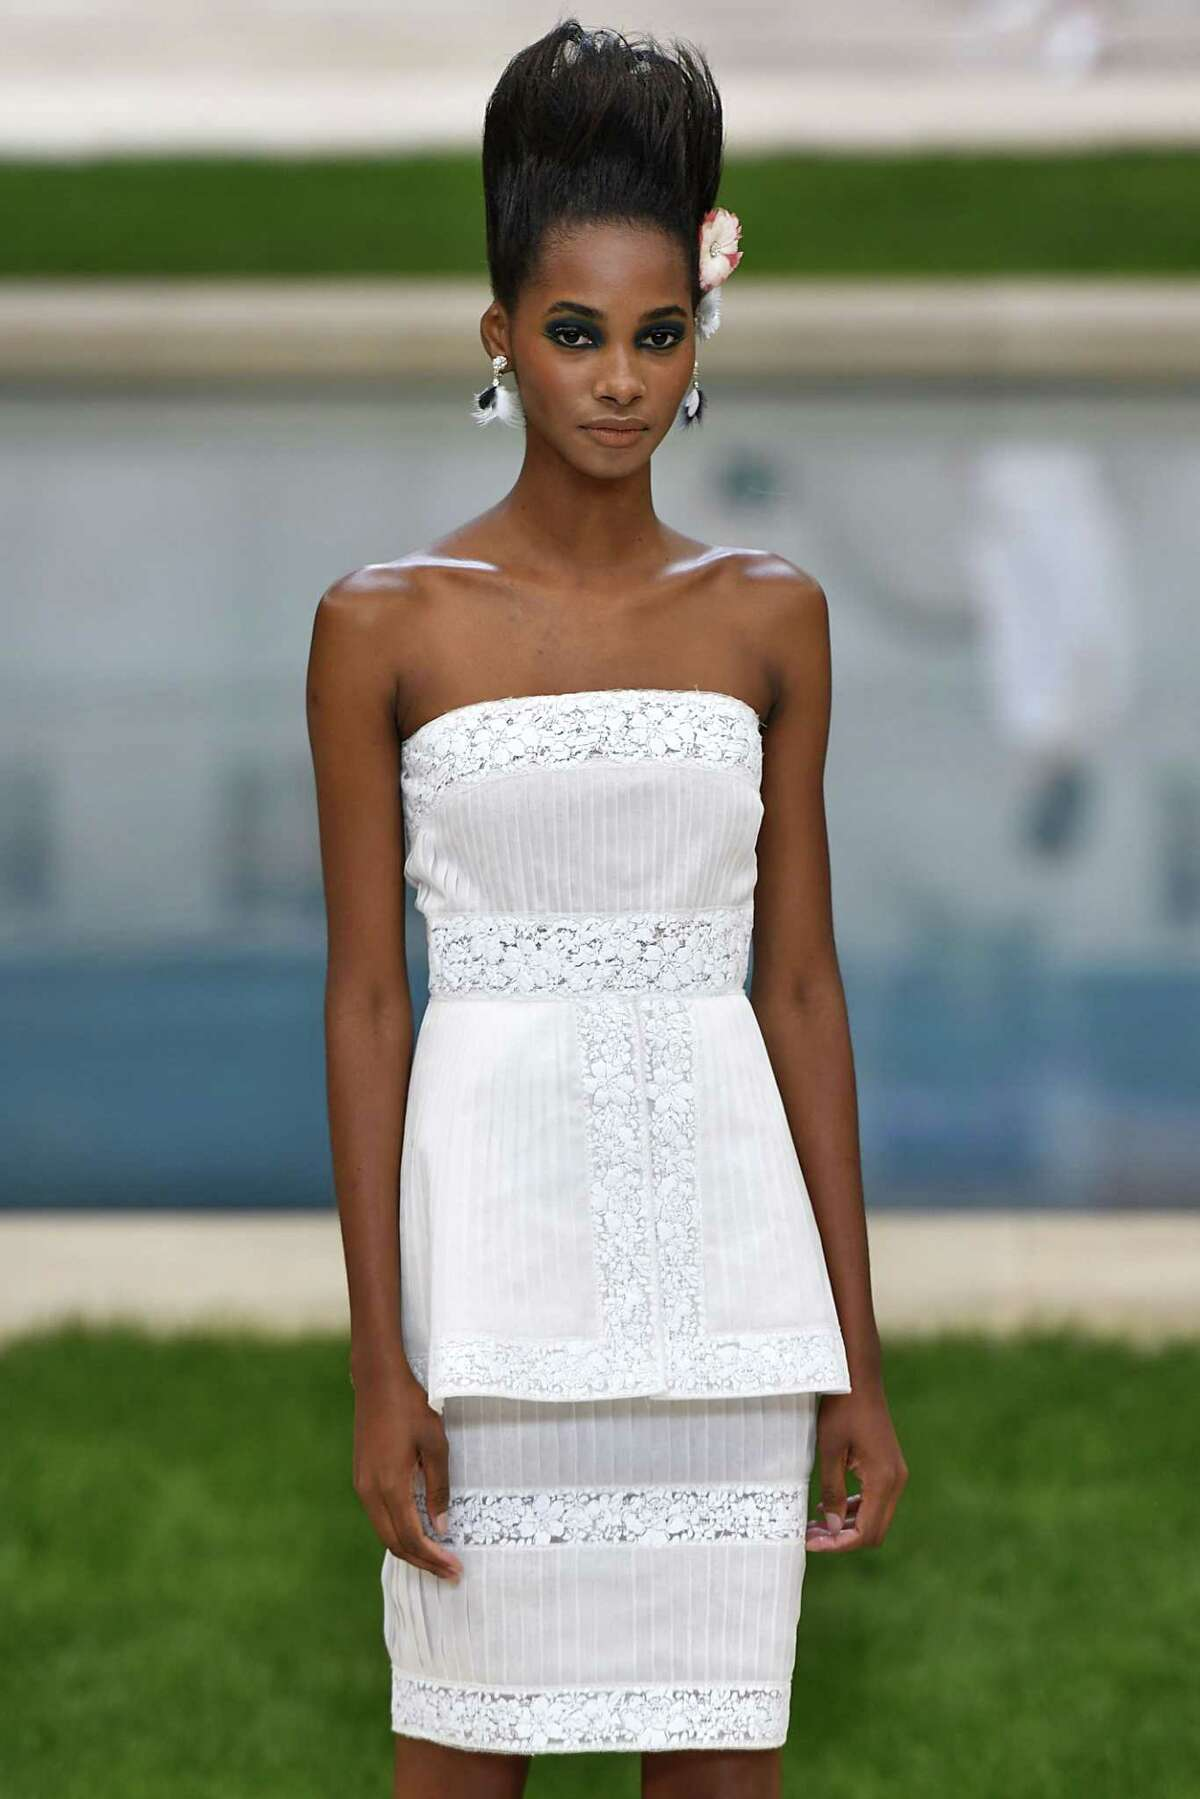 A model walks the runway during the Chanel Haute Couture Spring Summer 2019 fashion show as part of Paris Fashion Week on January 22, 2019 in Paris, France.